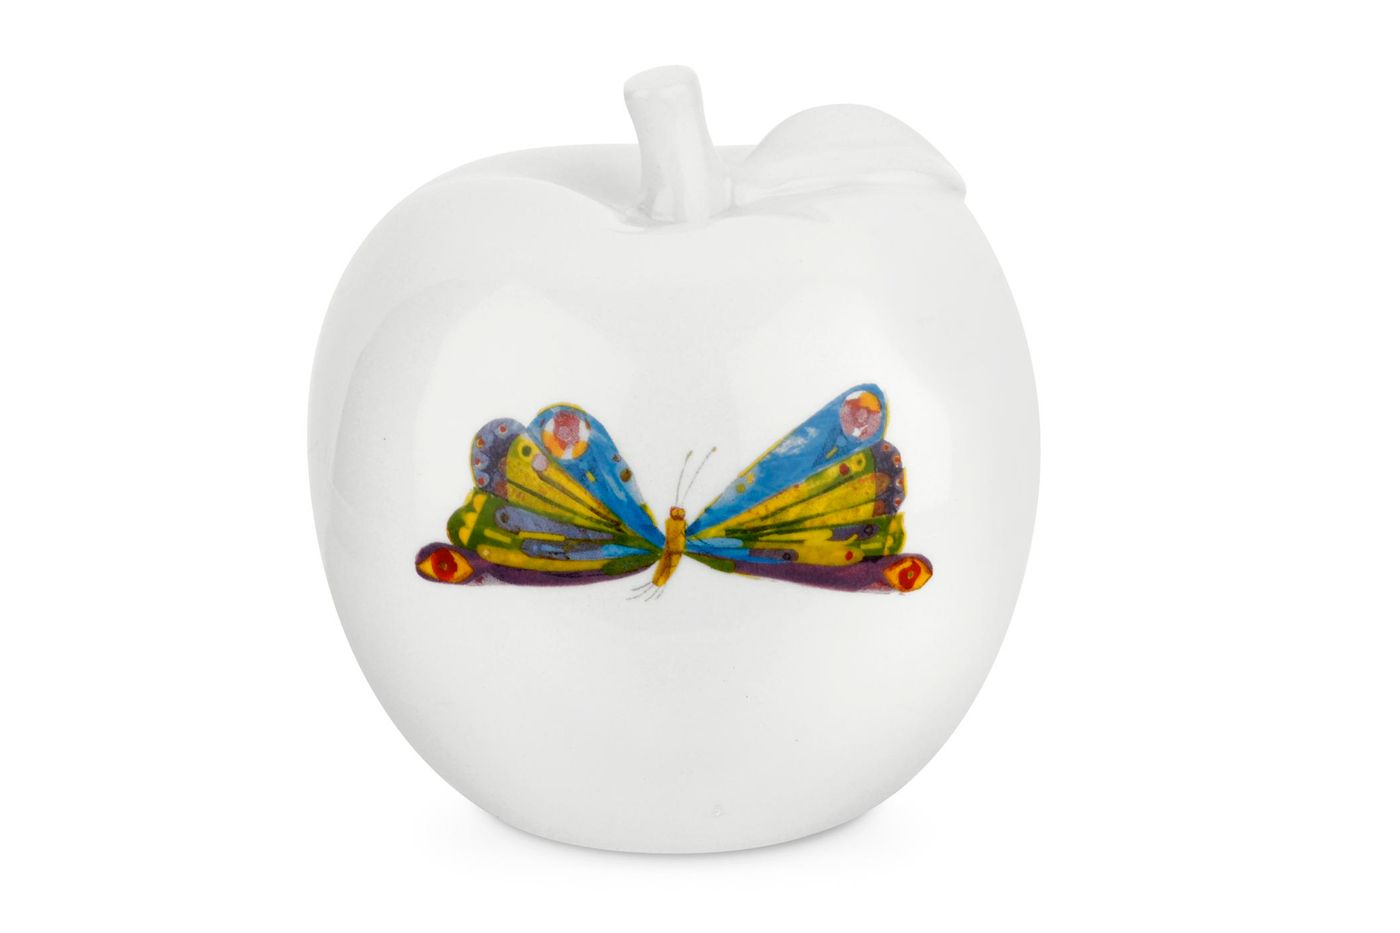 Portmeirion The Very Hungry Caterpillar by Eric Carle Money Box Apple thumb 2